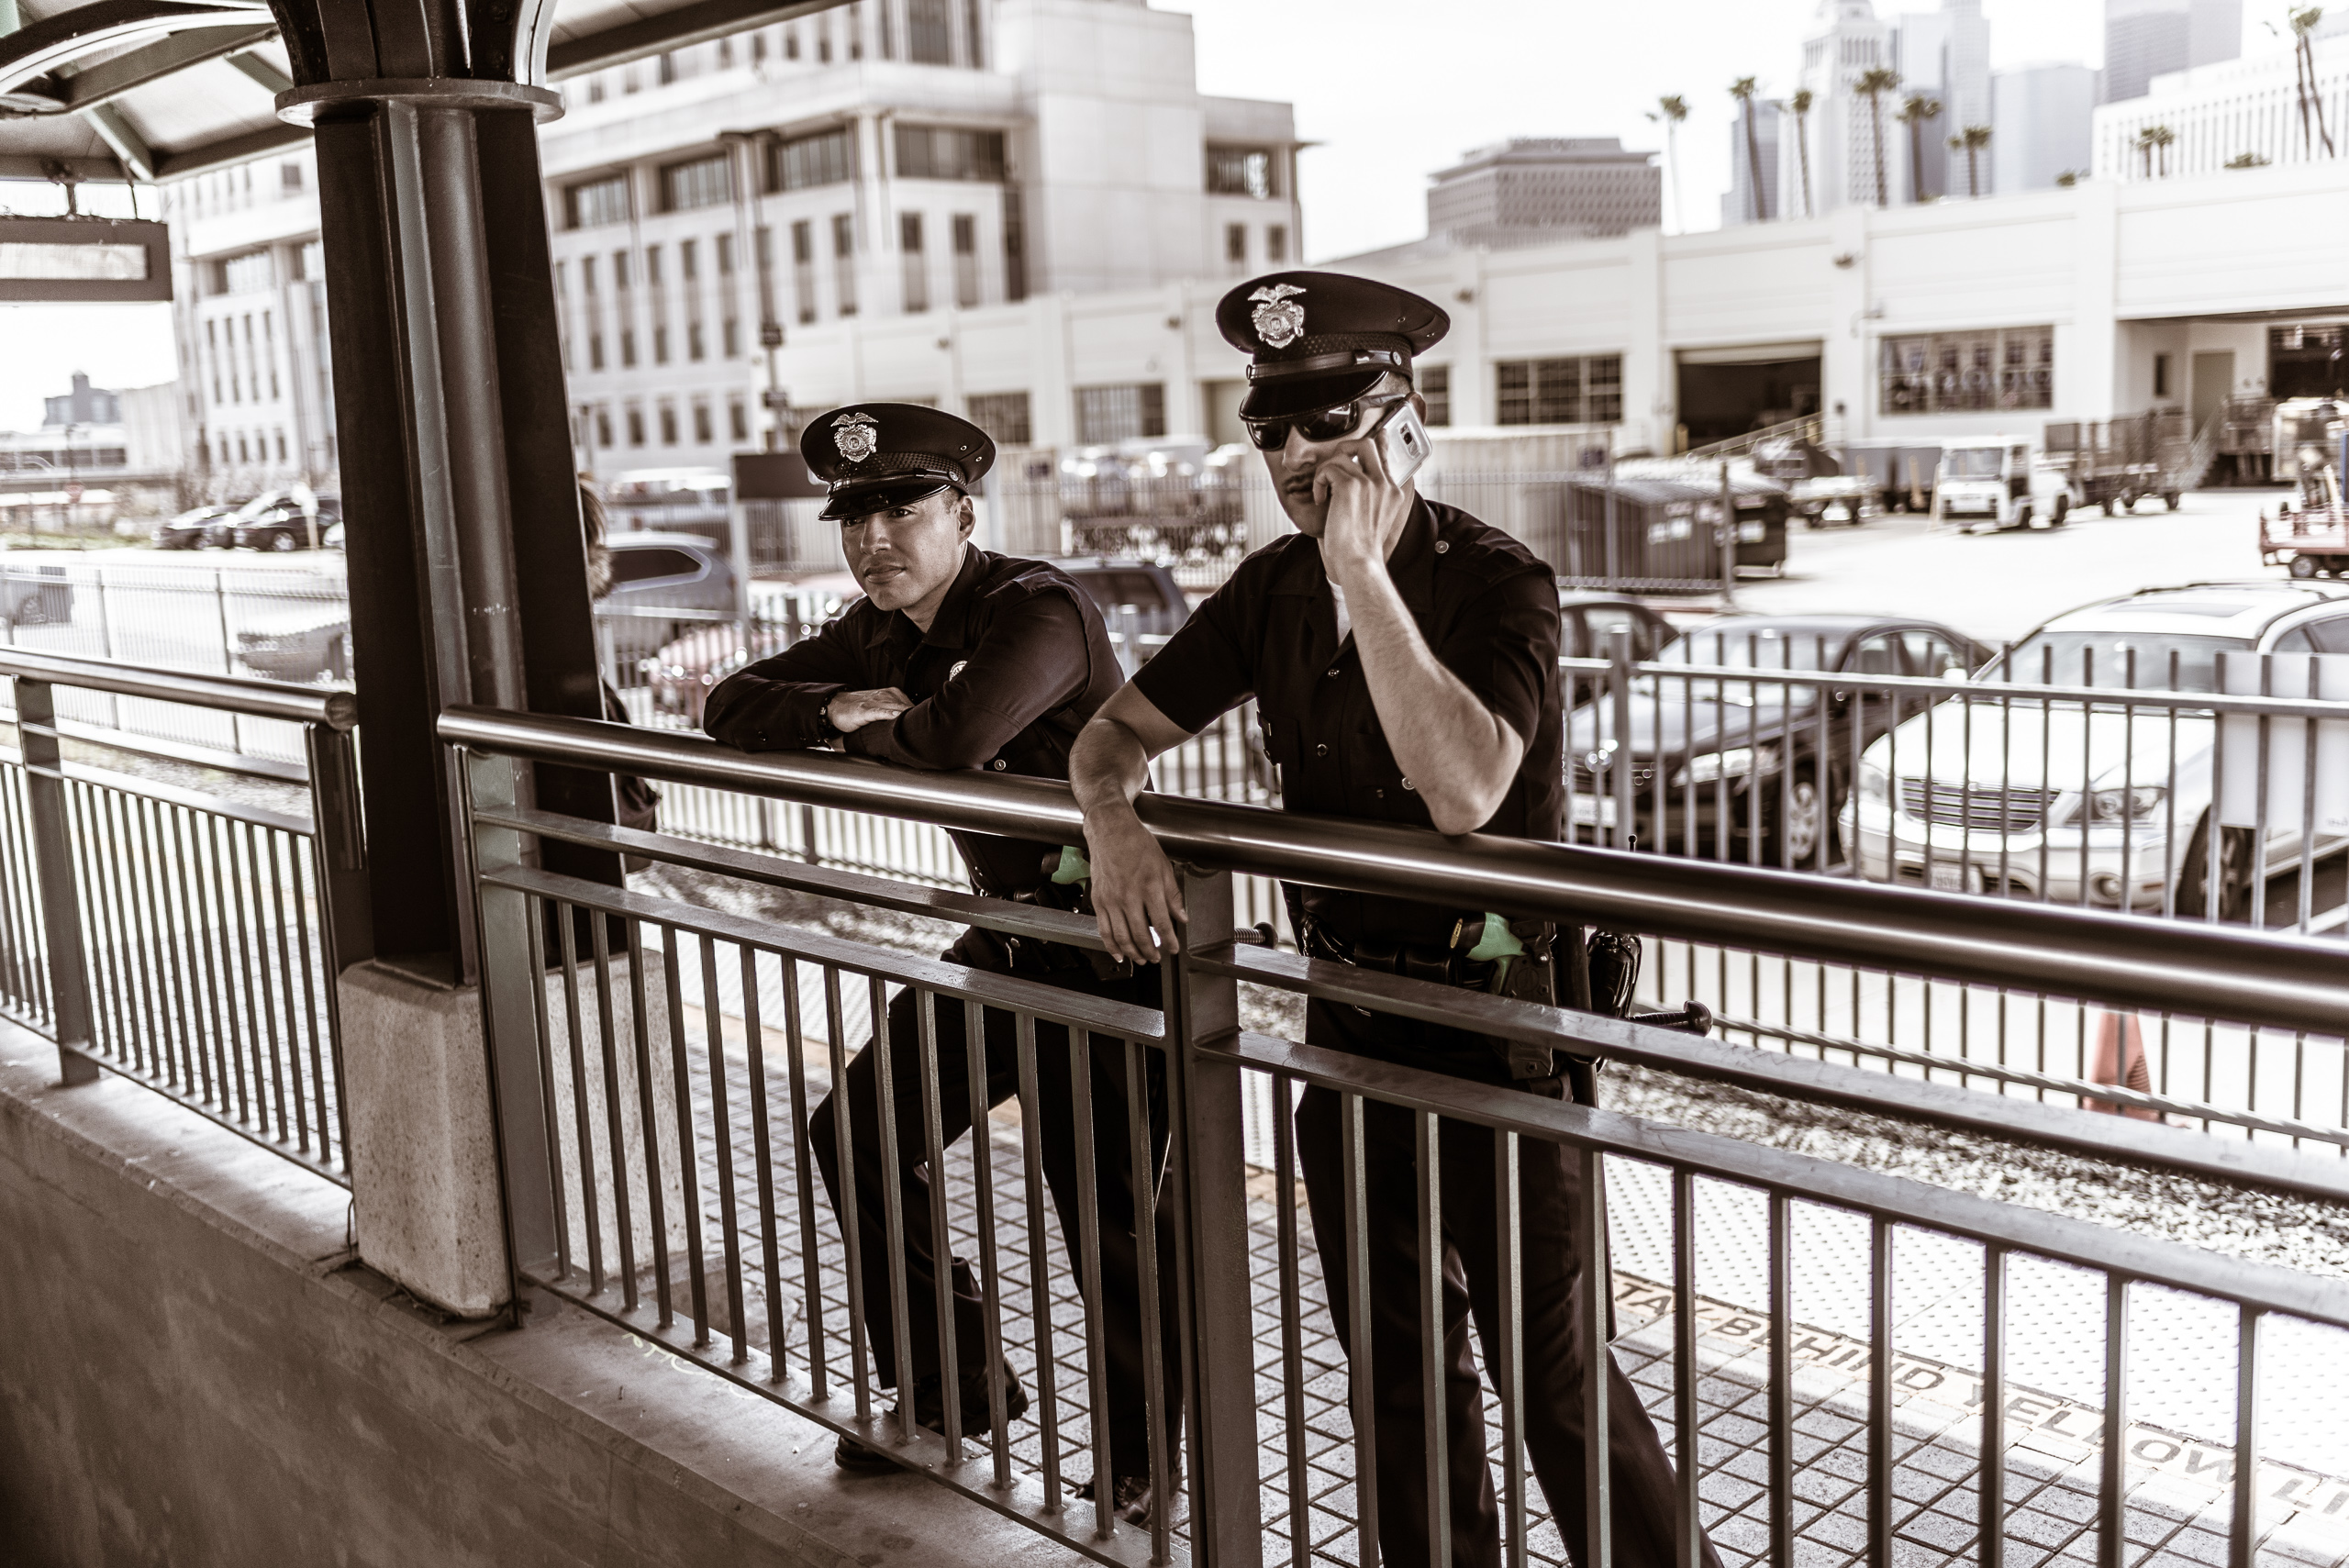 two LA Metro police officers lean on a rail on the Gold Line platform at Union Station in Downtown Los Angeles